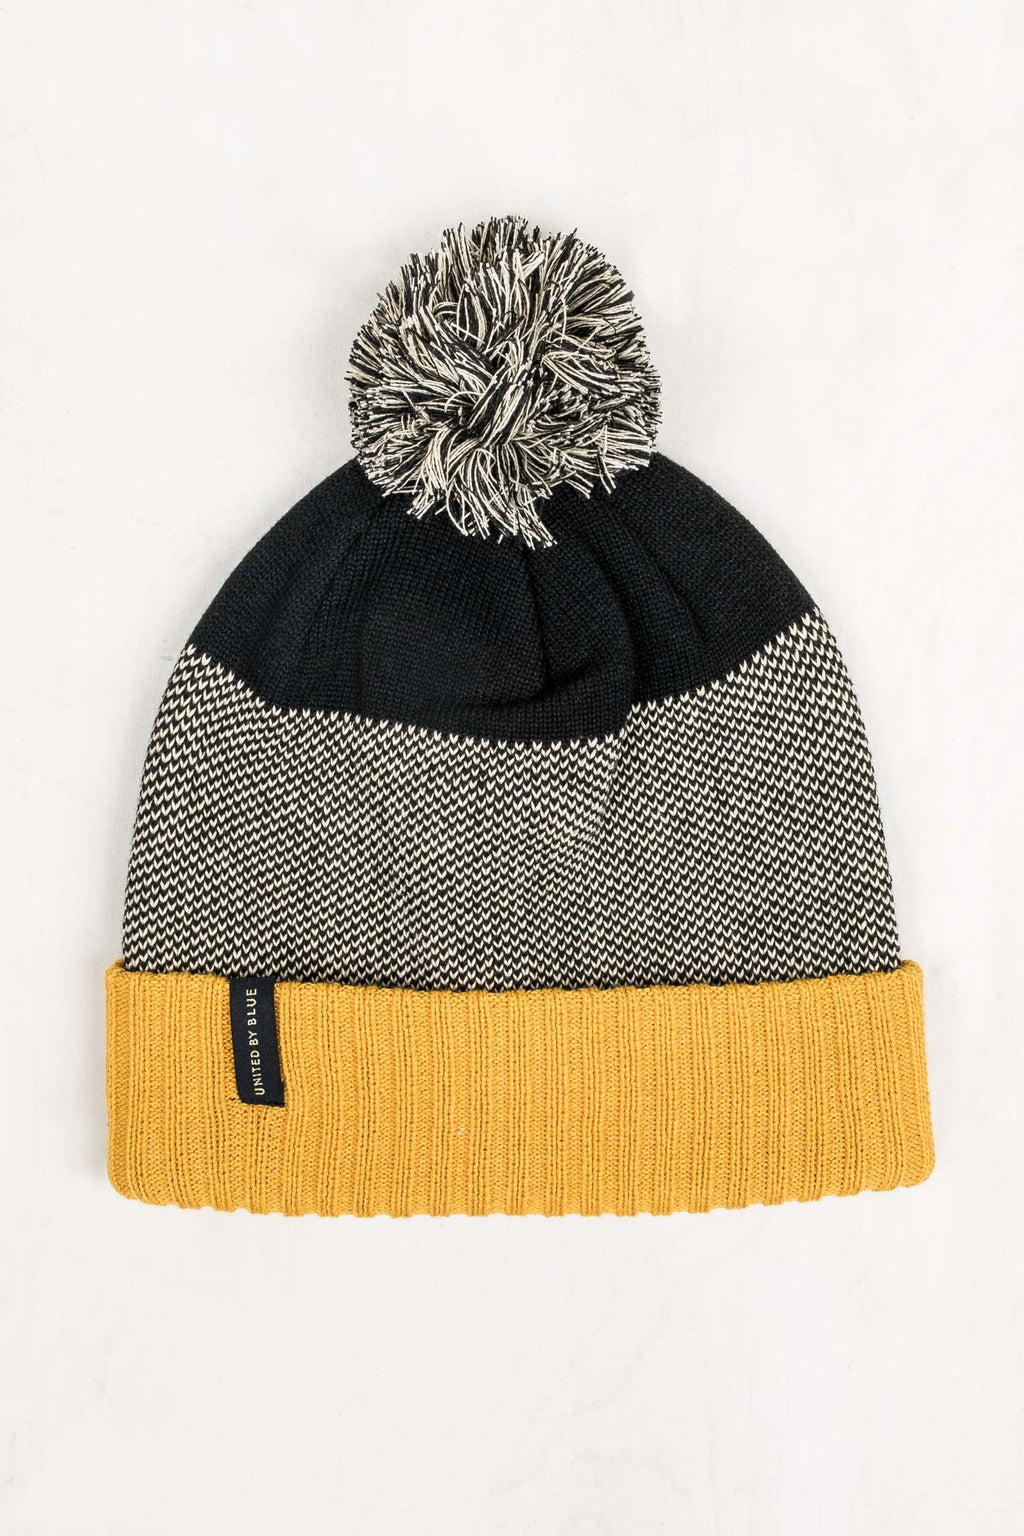 United By Blue - Birdseye Pom Beanie (Multiple Colors)